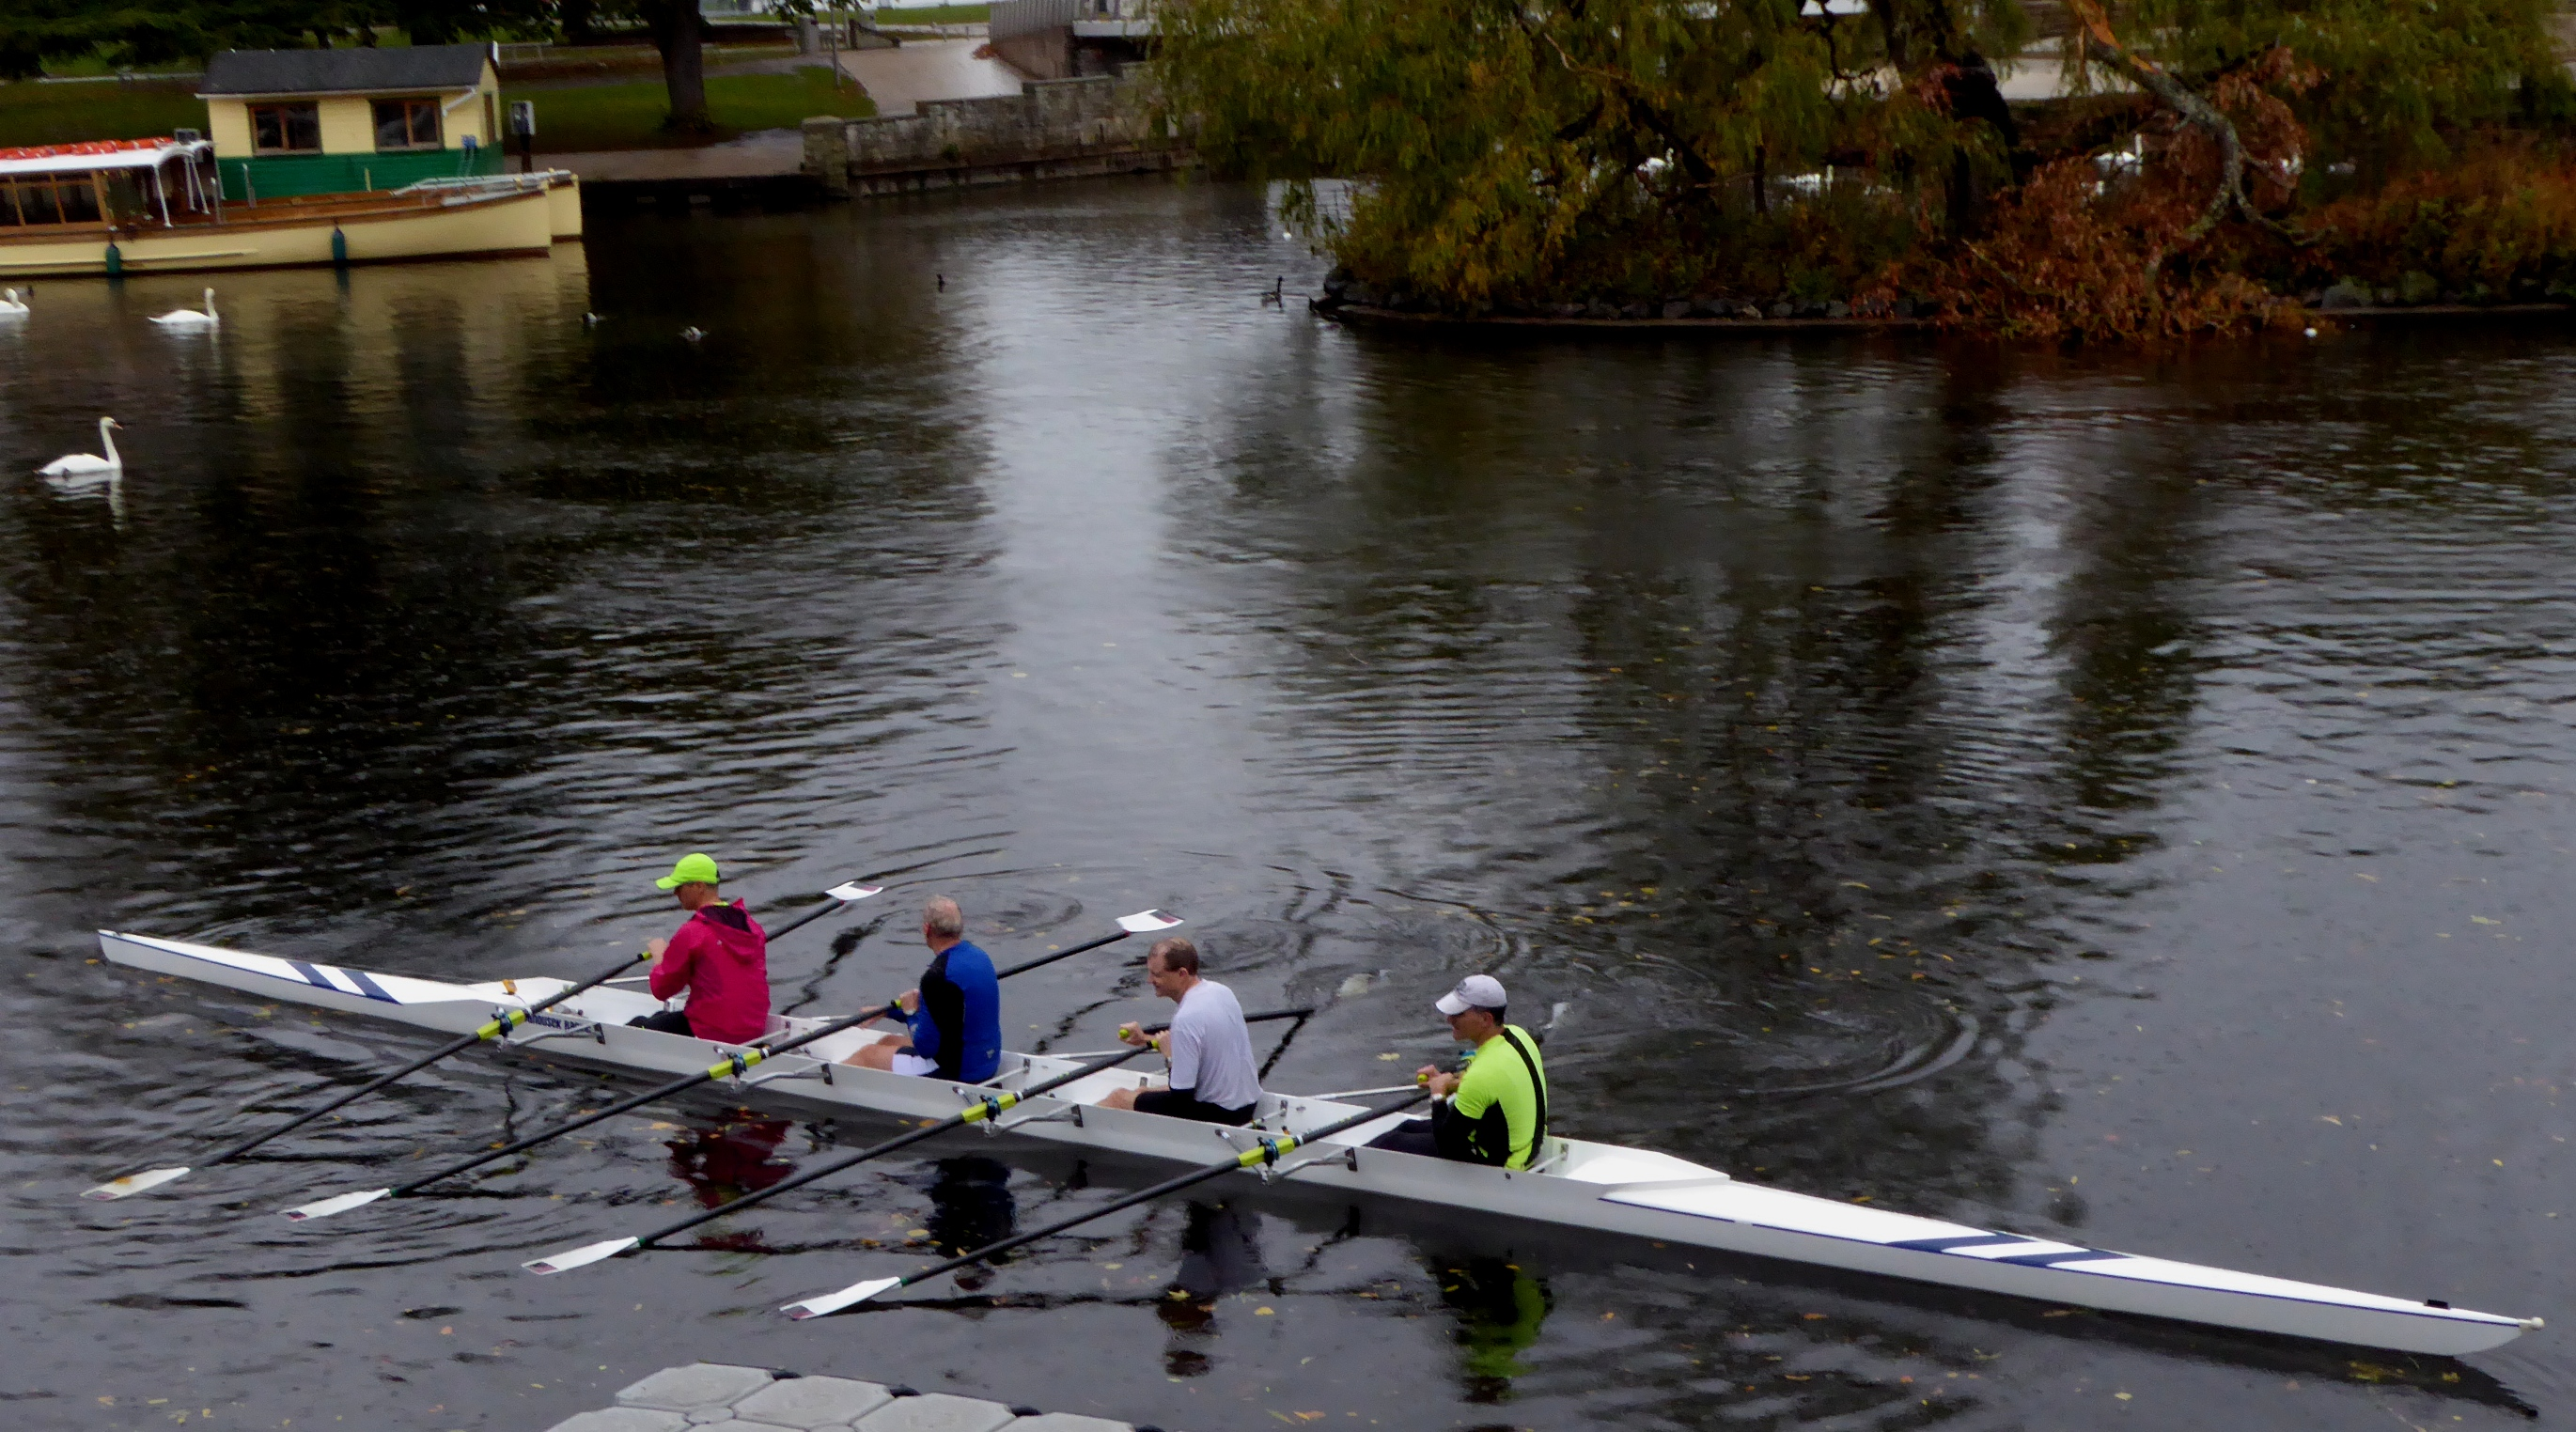 638750538ac7 ... Birmingham Edgbaston Reservoir so that they can drive Stratford Boat  Club s three safety and coaching launches. Despite the inclement weekend  weather